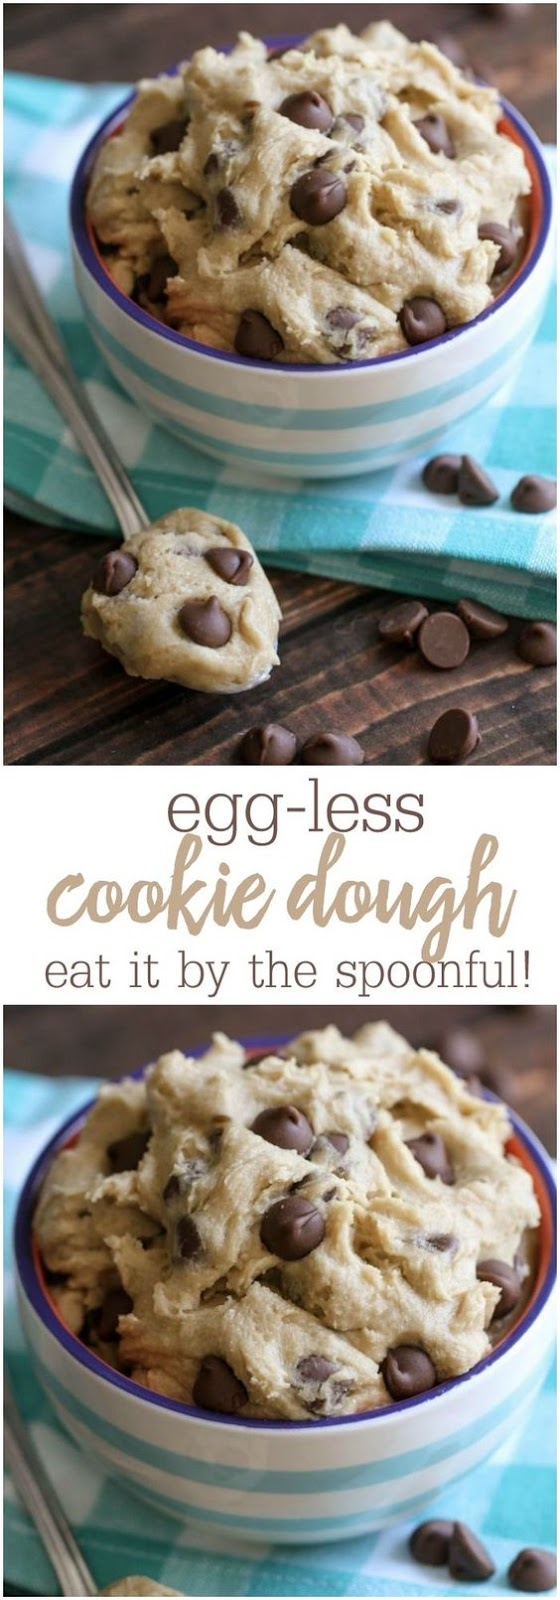 EGGLESS COOKIE DOUGH #eggless #cookie #cookierecipes #dough #dessert #dessertrecipes #easydessertrecipes Desserts, Healthy Food, Easy Recipes, Dinner, Lauch, Delicious, Easy, Holidays Recipe, Special Diet, World Cuisine, Cake, Grill, Appetizers, Healthy Recipes, Drinks, Cooking Method, Italian Recipes, Meat, Vegan Recipes, Cookies, Pasta Recipes, Fruit, Salad, Soup Appetizers, Non Alcoholic Drinks, Meal Planning, Vegetables, Soup, Pastry, Chocolate, Dairy, Alcoholic Drinks, Bulgur Salad, Baking, Snacks, Beef Recipes, Meat Appetizers, Mexican Recipes, Bread, Asian Recipes, Seafood Appetizers, Muffins, Breakfast And Brunch, Condiments, Cupcakes, Cheese, Chicken Recipes, Pie, Coffee, No Bake Desserts, Healthy Snacks, Seafood, Grain, Lunches Dinners, Mexican, Quick Bread, Liquor